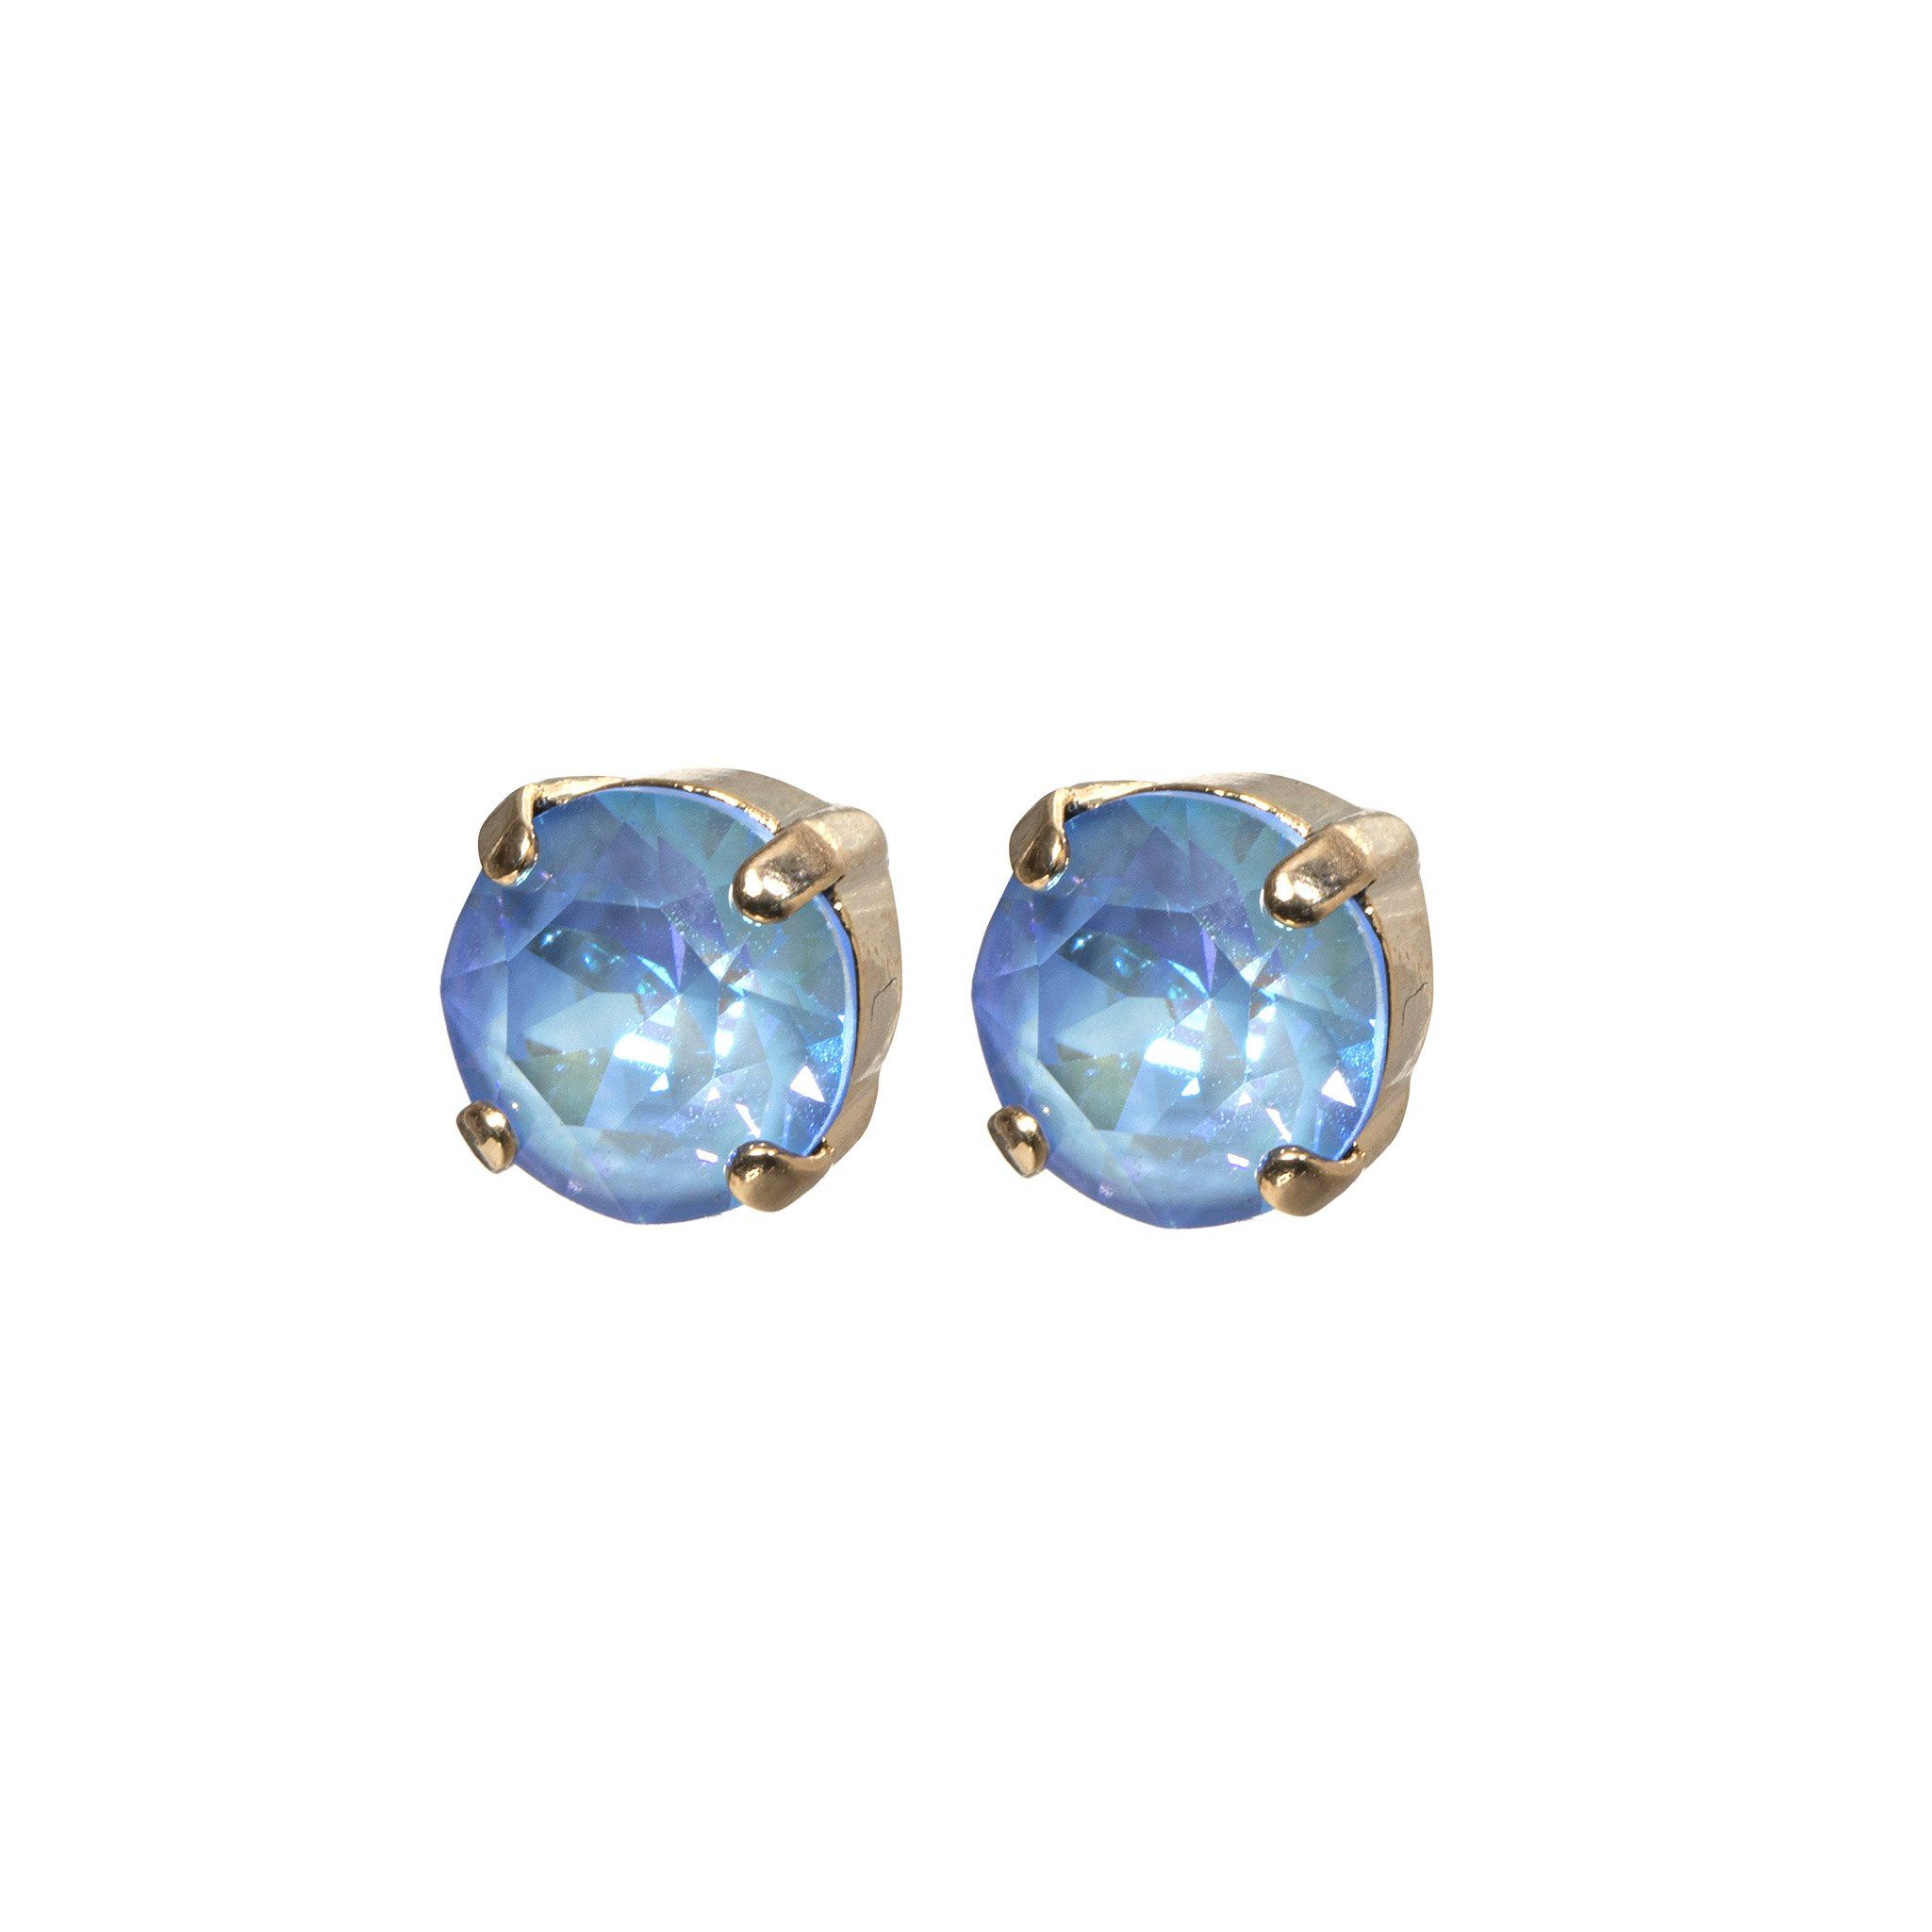 Splash Earrings - Light Blue